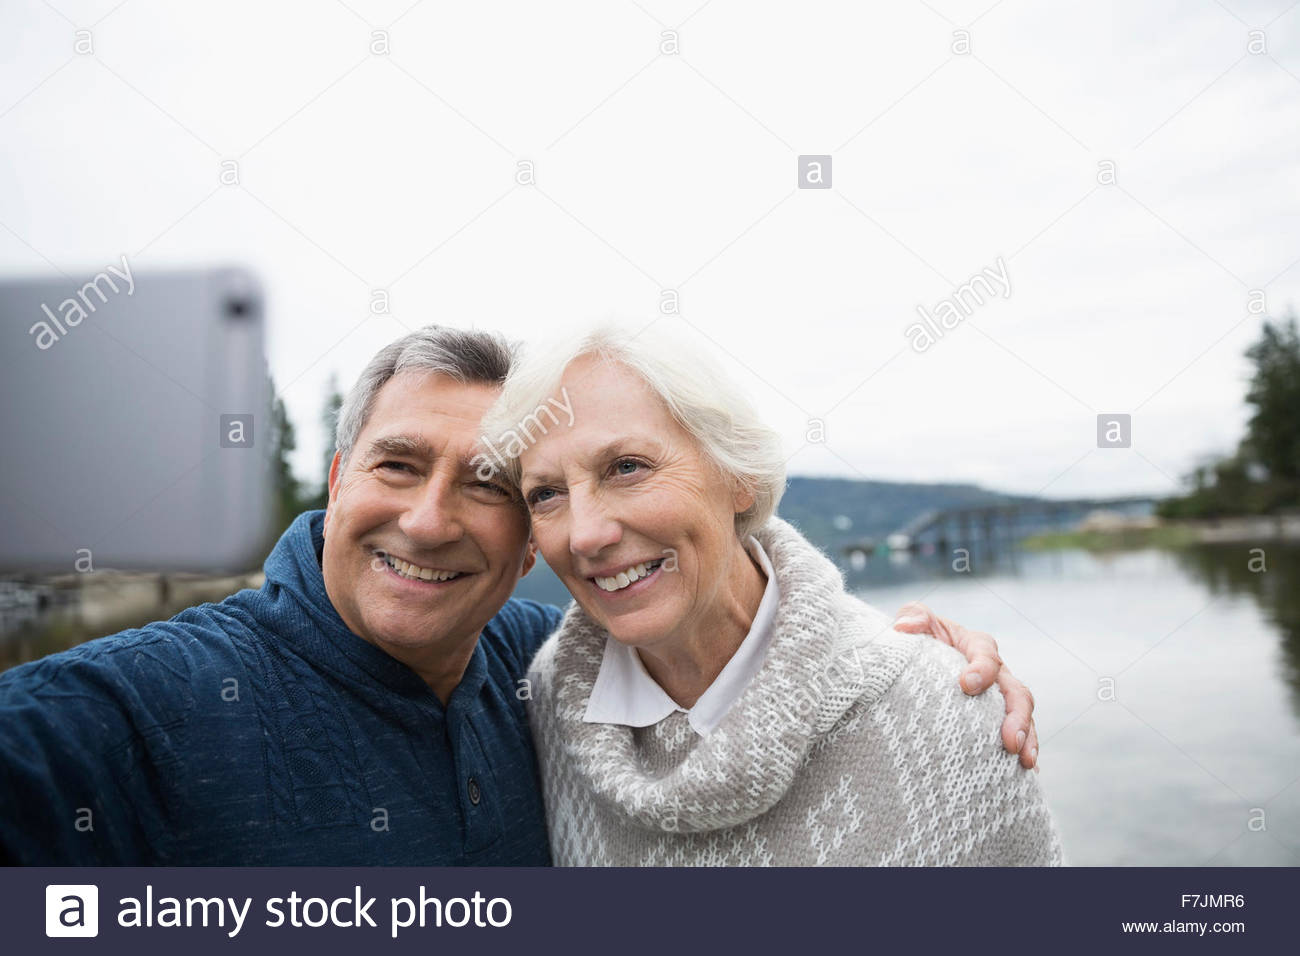 Senior couple taking selfie with lake in background - Stock Image